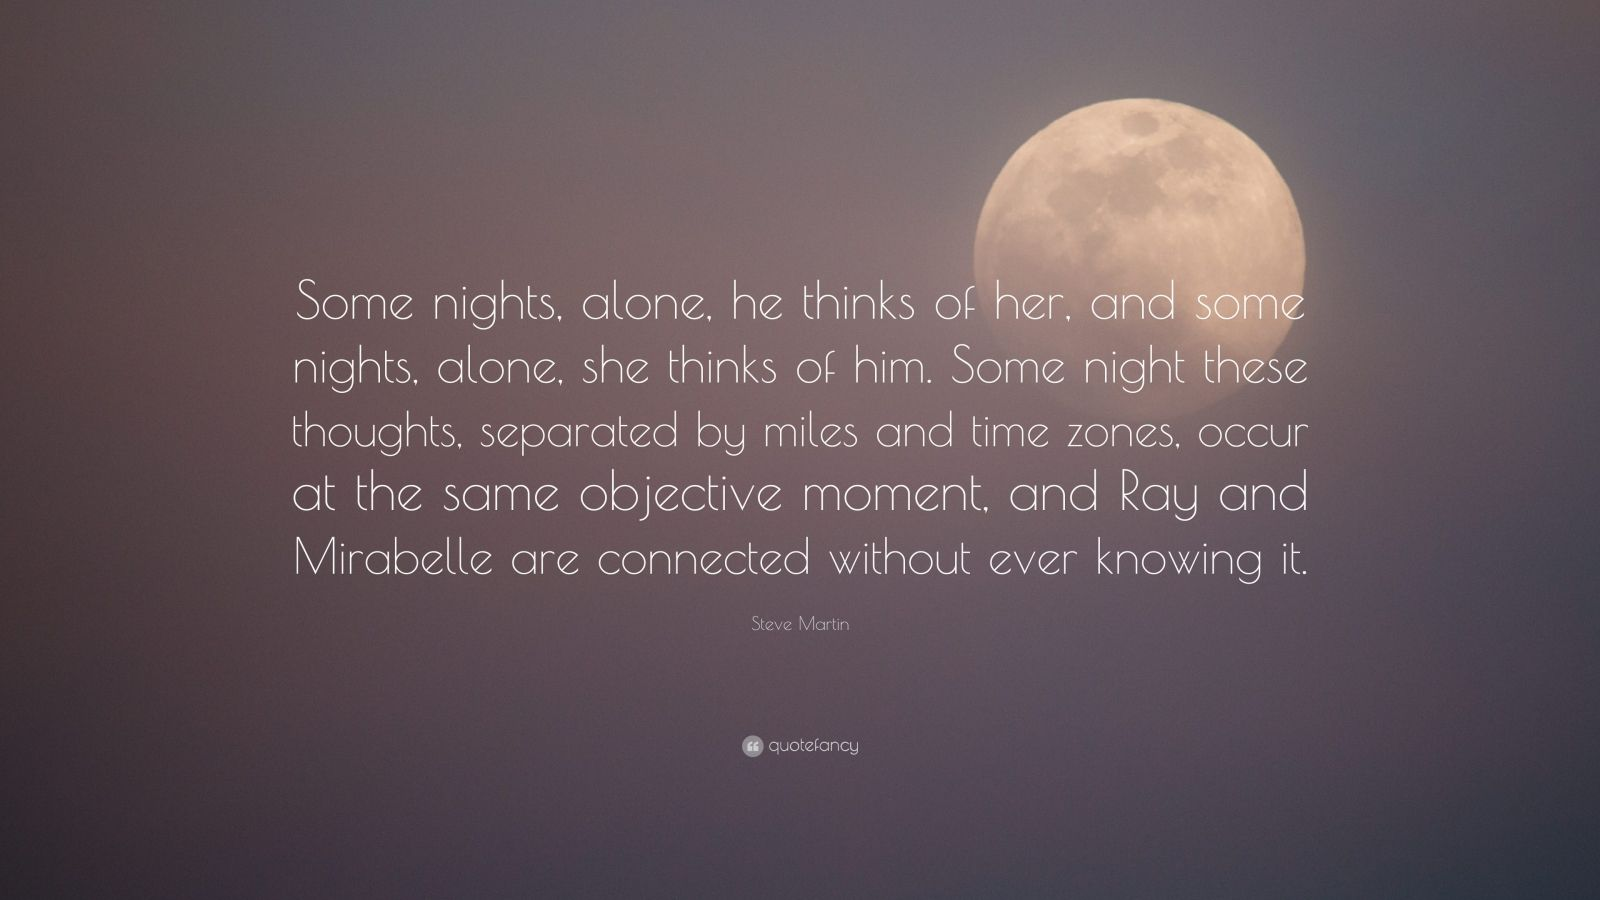 """Steve Martin Quote: """"Some nights, alone, he thinks of her, and some nights, alone, she thinks of him. Some night these thoughts, separated by miles and time zones, occur at the same objective moment, and Ray and Mirabelle are connected without ever knowing it."""""""